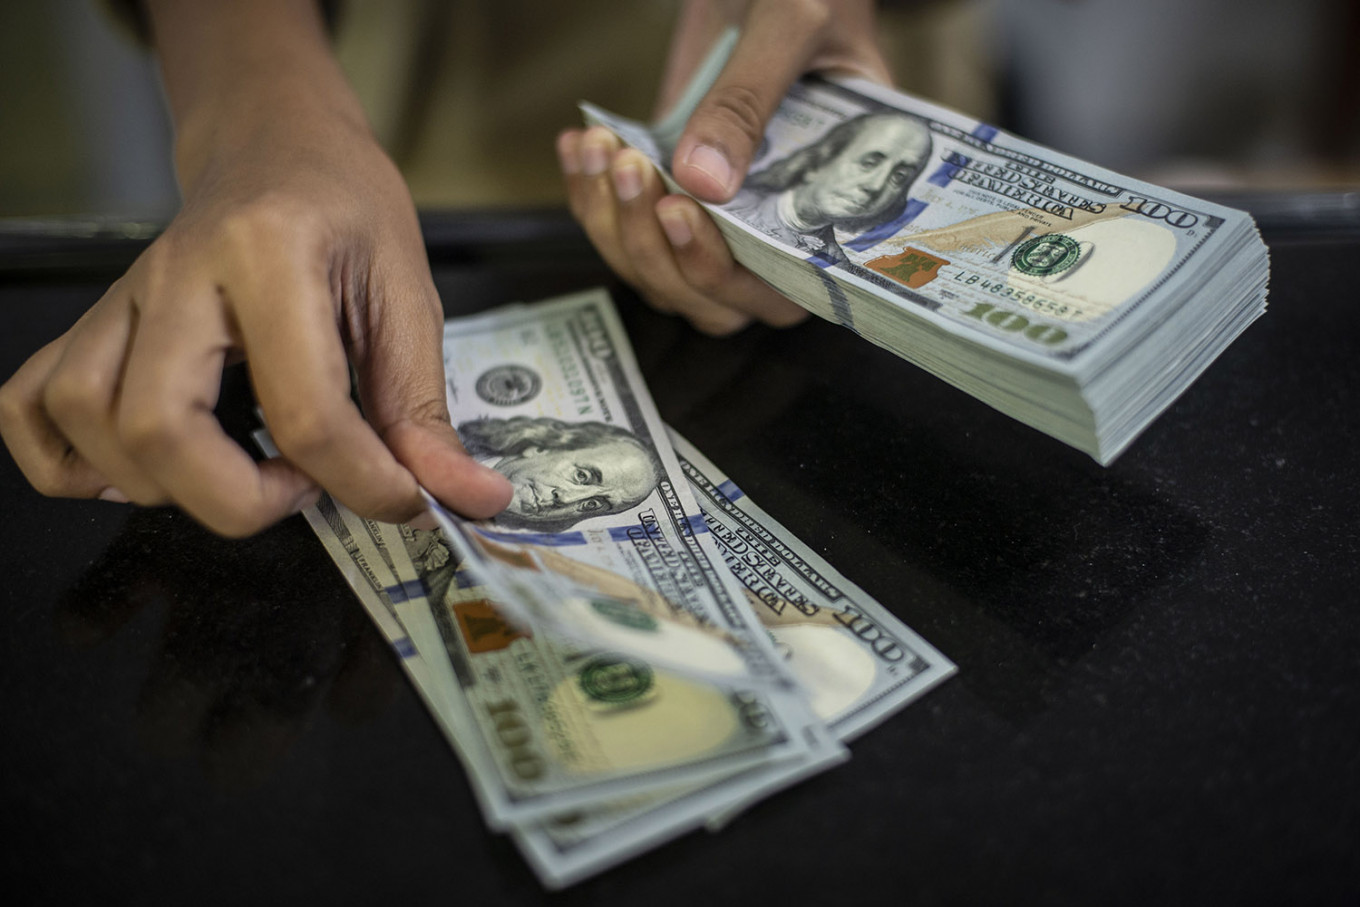 Rupiah inches closer to 15,000 over fears of COVID-19 pandemic